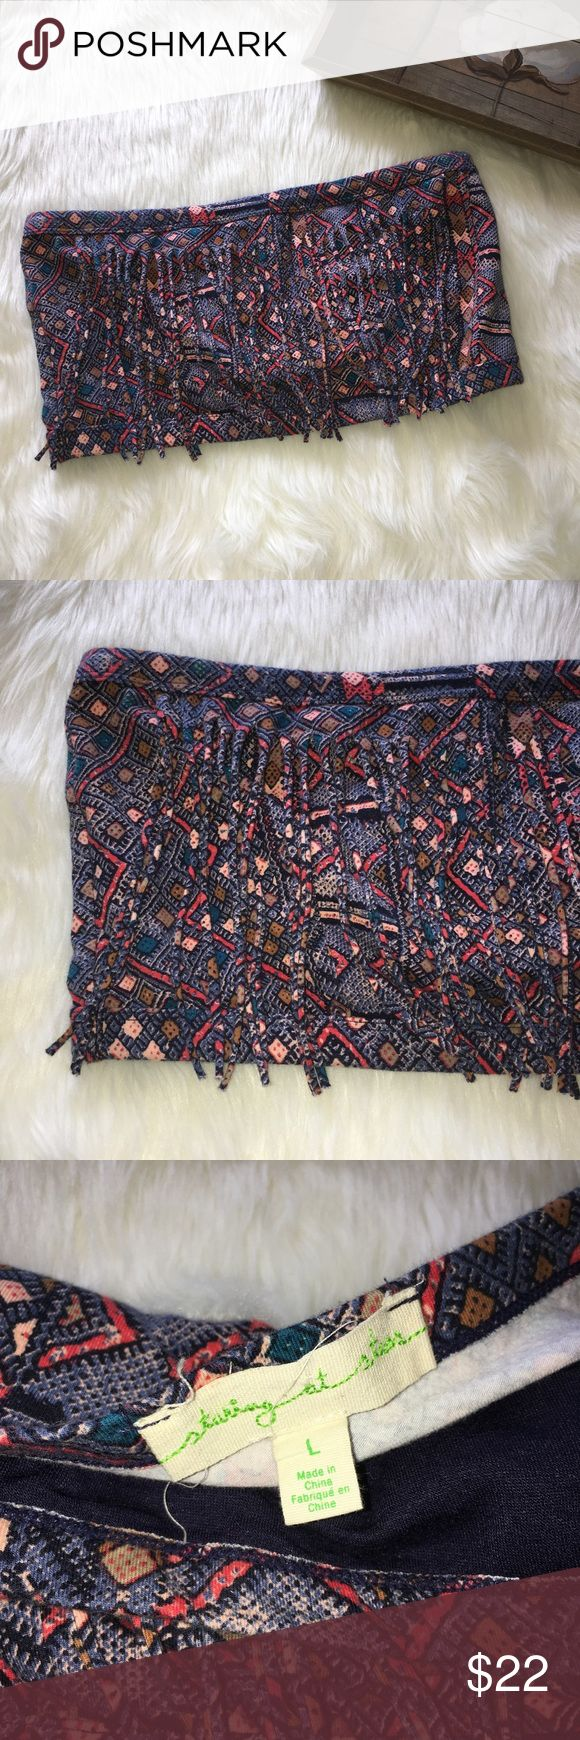 Staring at Stars Urban Outfitters Bandeau Top Sz L Super chic and stylish staring at stars tube top Bandeau in excellent preowned condition size large. Easy to wear and style. Perfect for summer Staring at Stars Tops Crop Tops